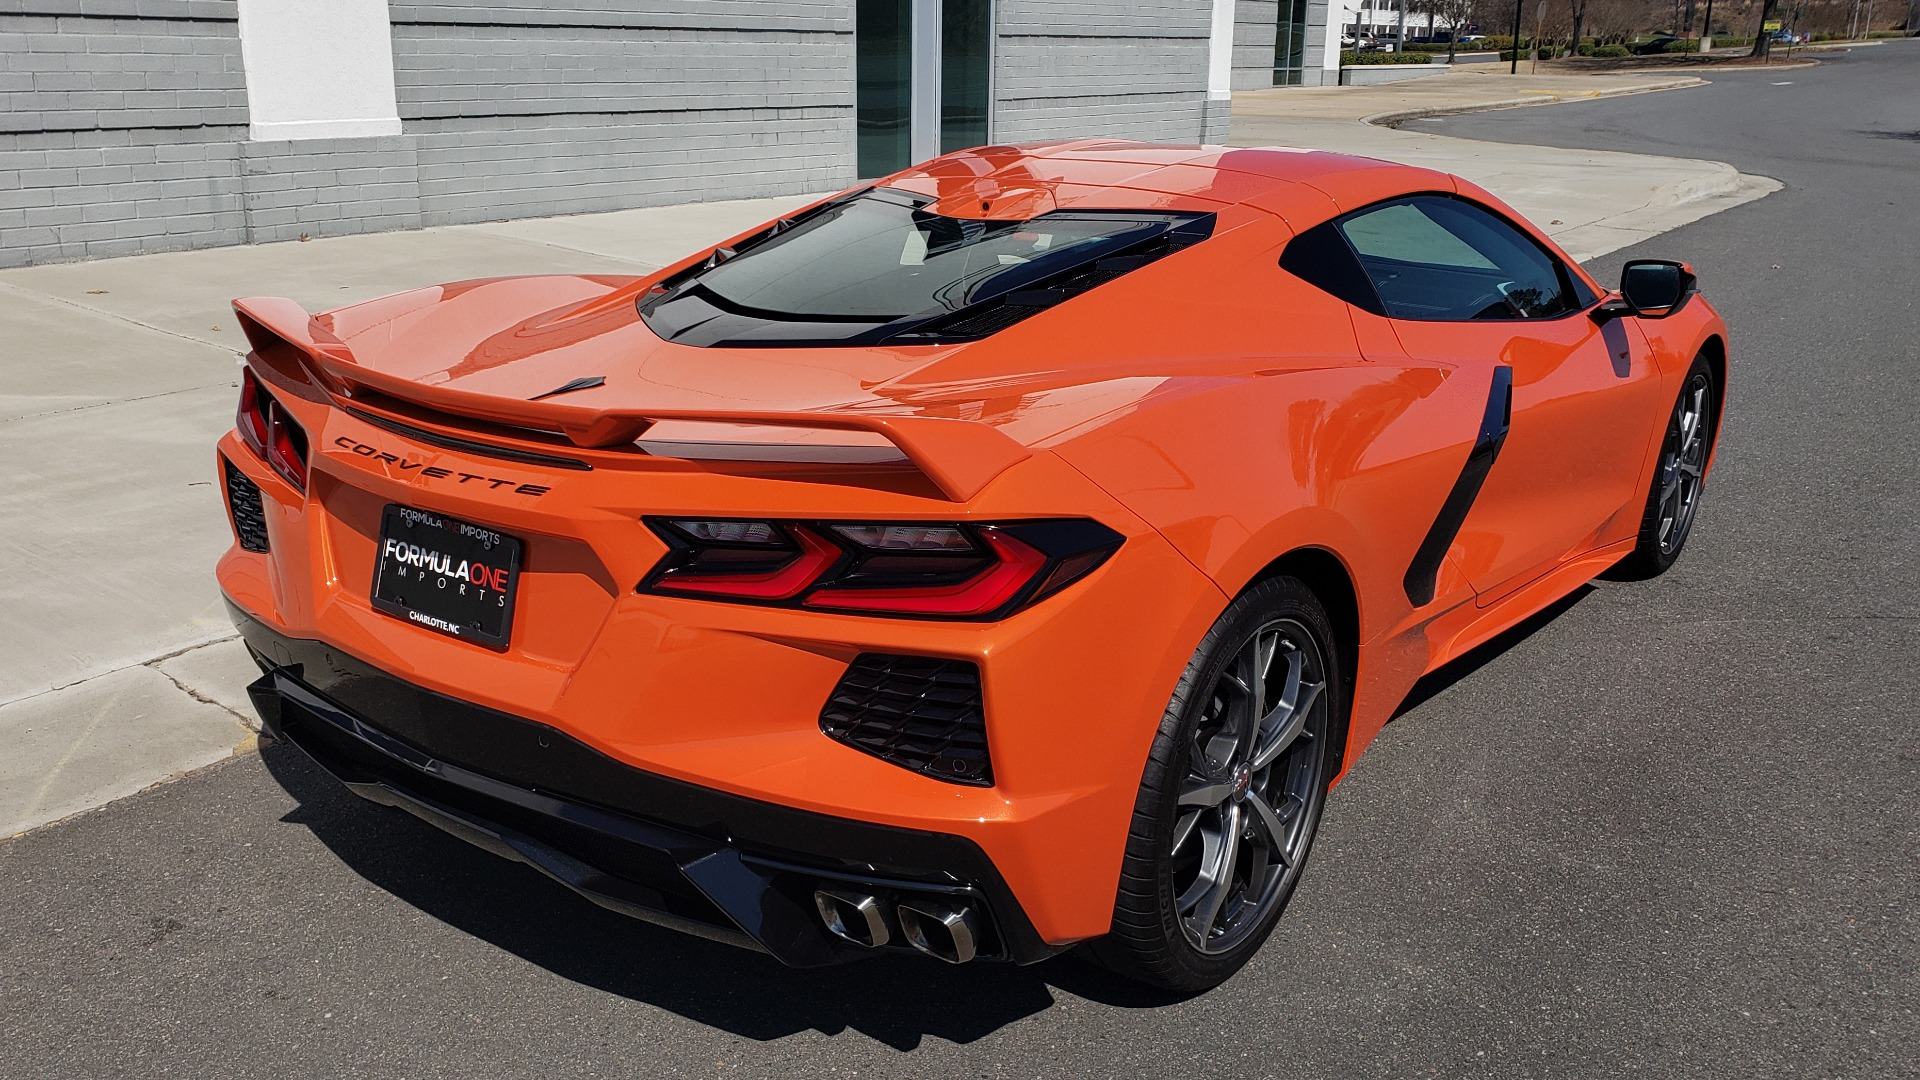 Used 2020 Chevrolet CORVETTE C8 STINGRAY 3LT COUPE / NAV / BOSE / CAMERA / LIKE NEW for sale Sold at Formula Imports in Charlotte NC 28227 10